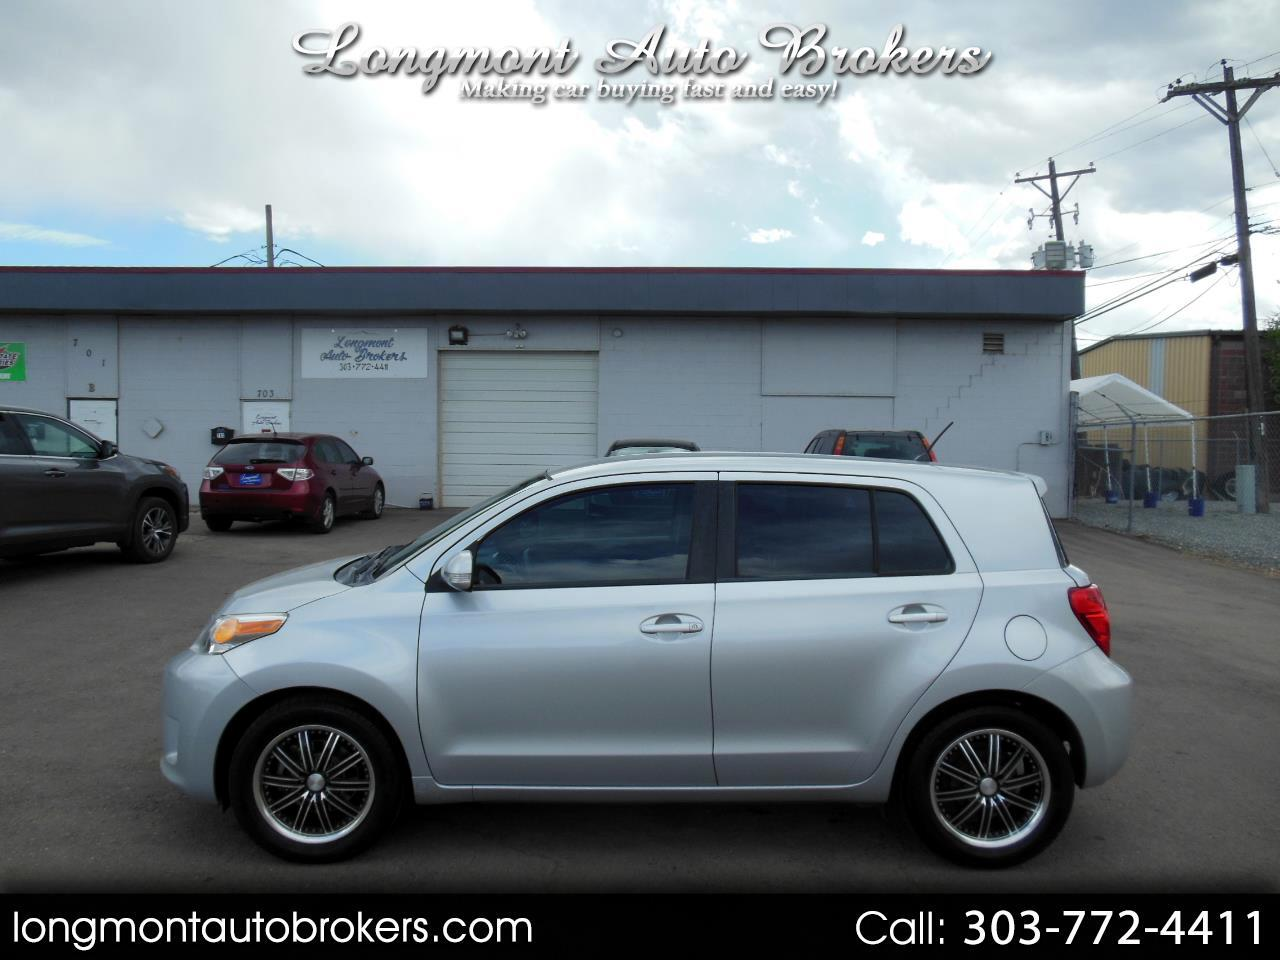 2010 Scion xD 5dr HB Auto (Natl)